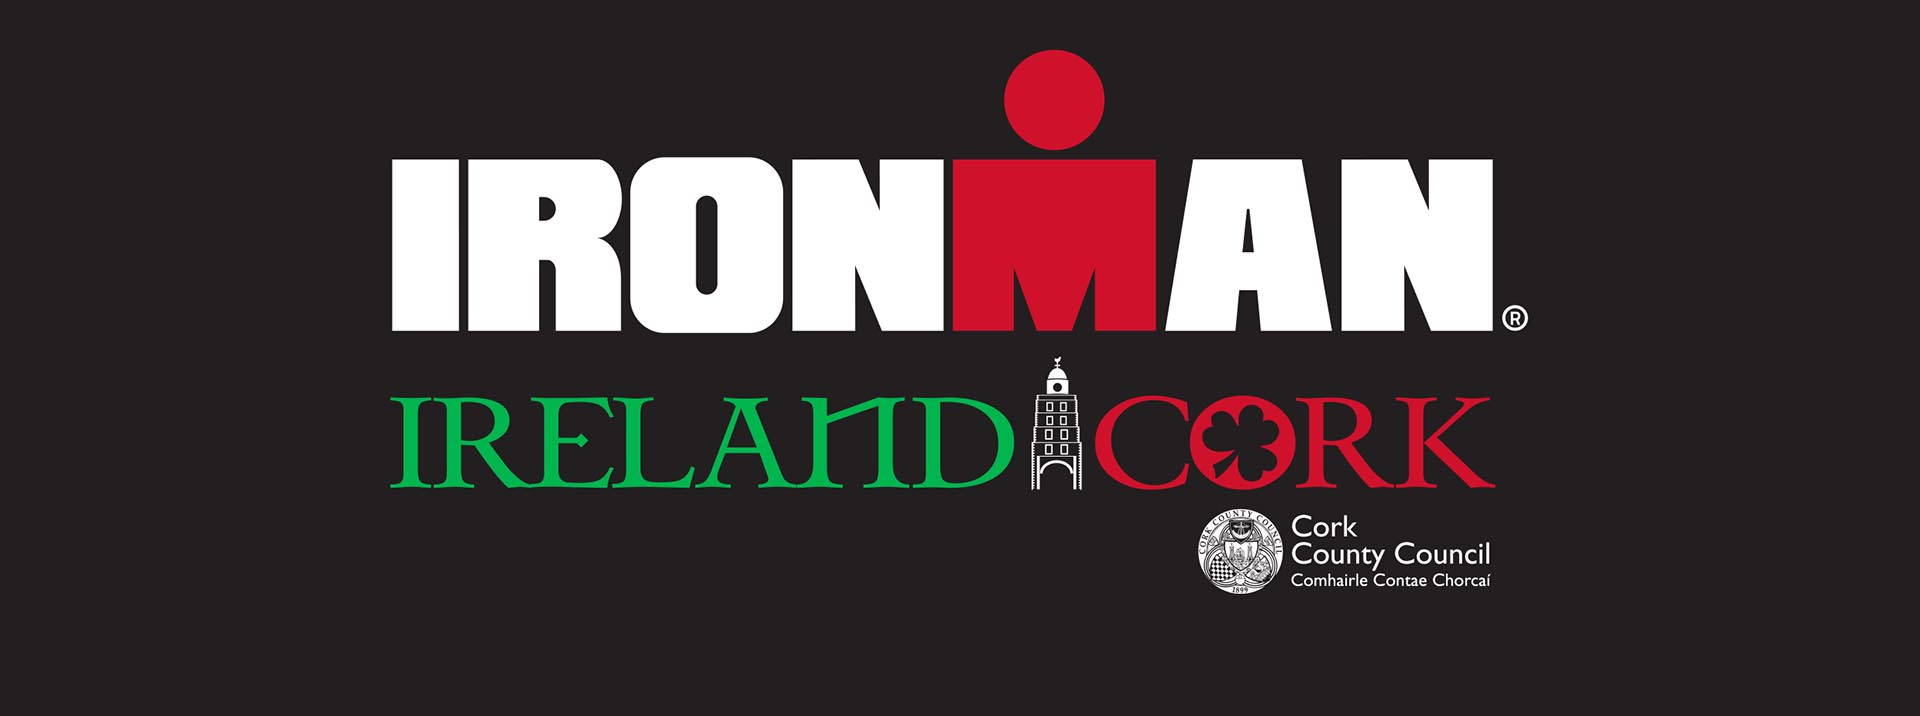 IRONKIDS - Youghal - confx.co.uk